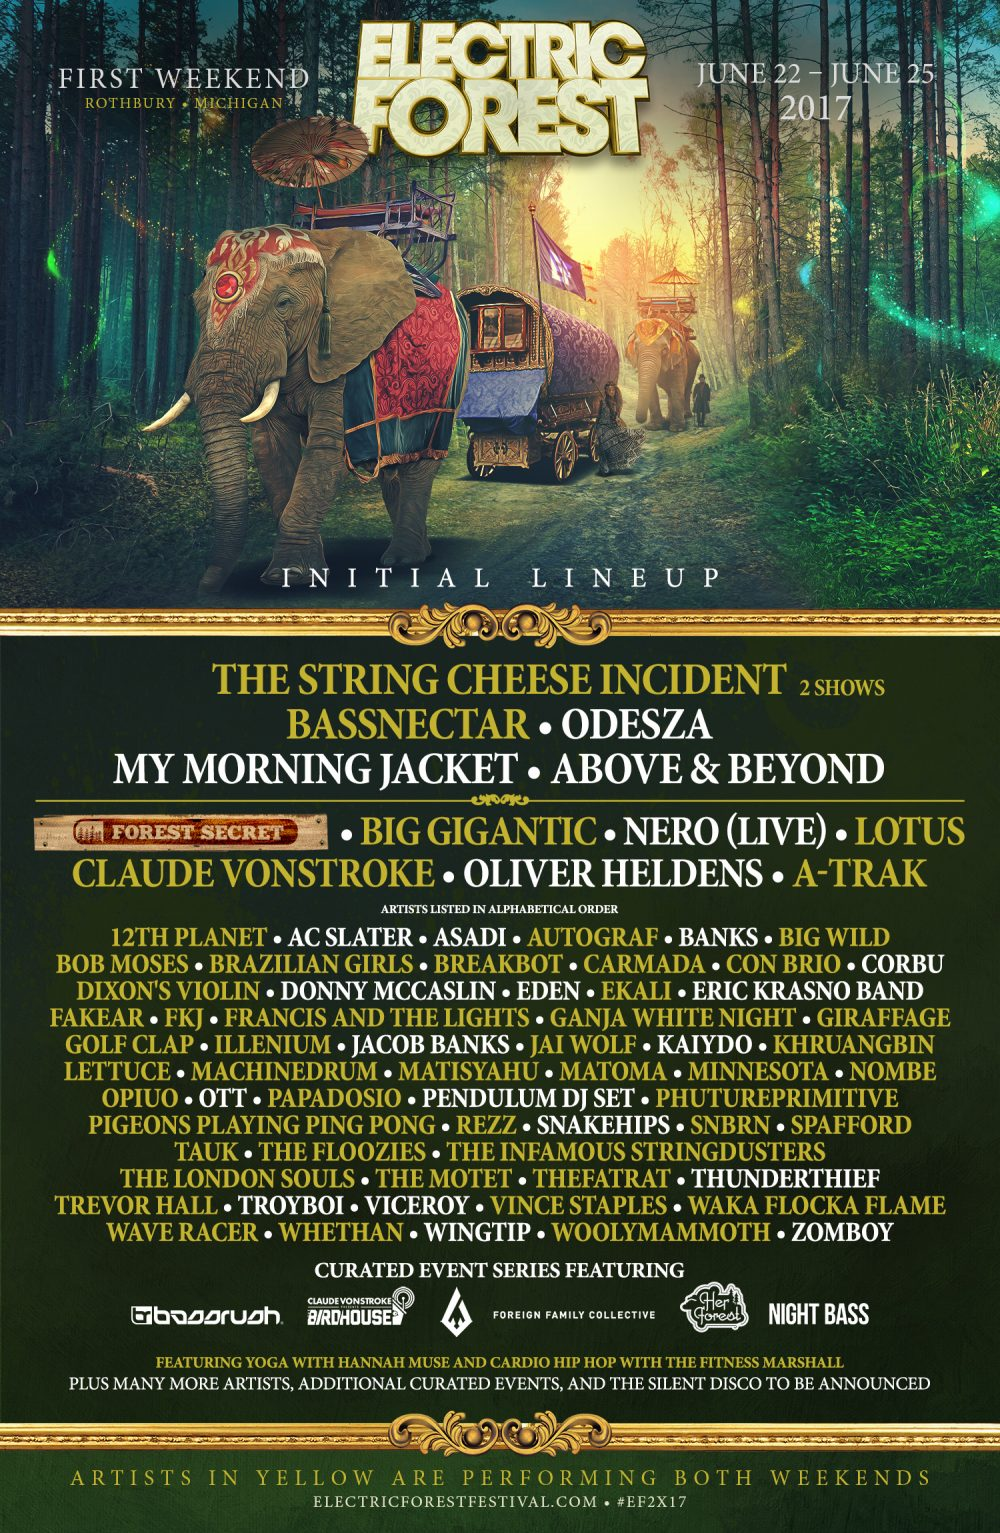 Electric Forest lineup